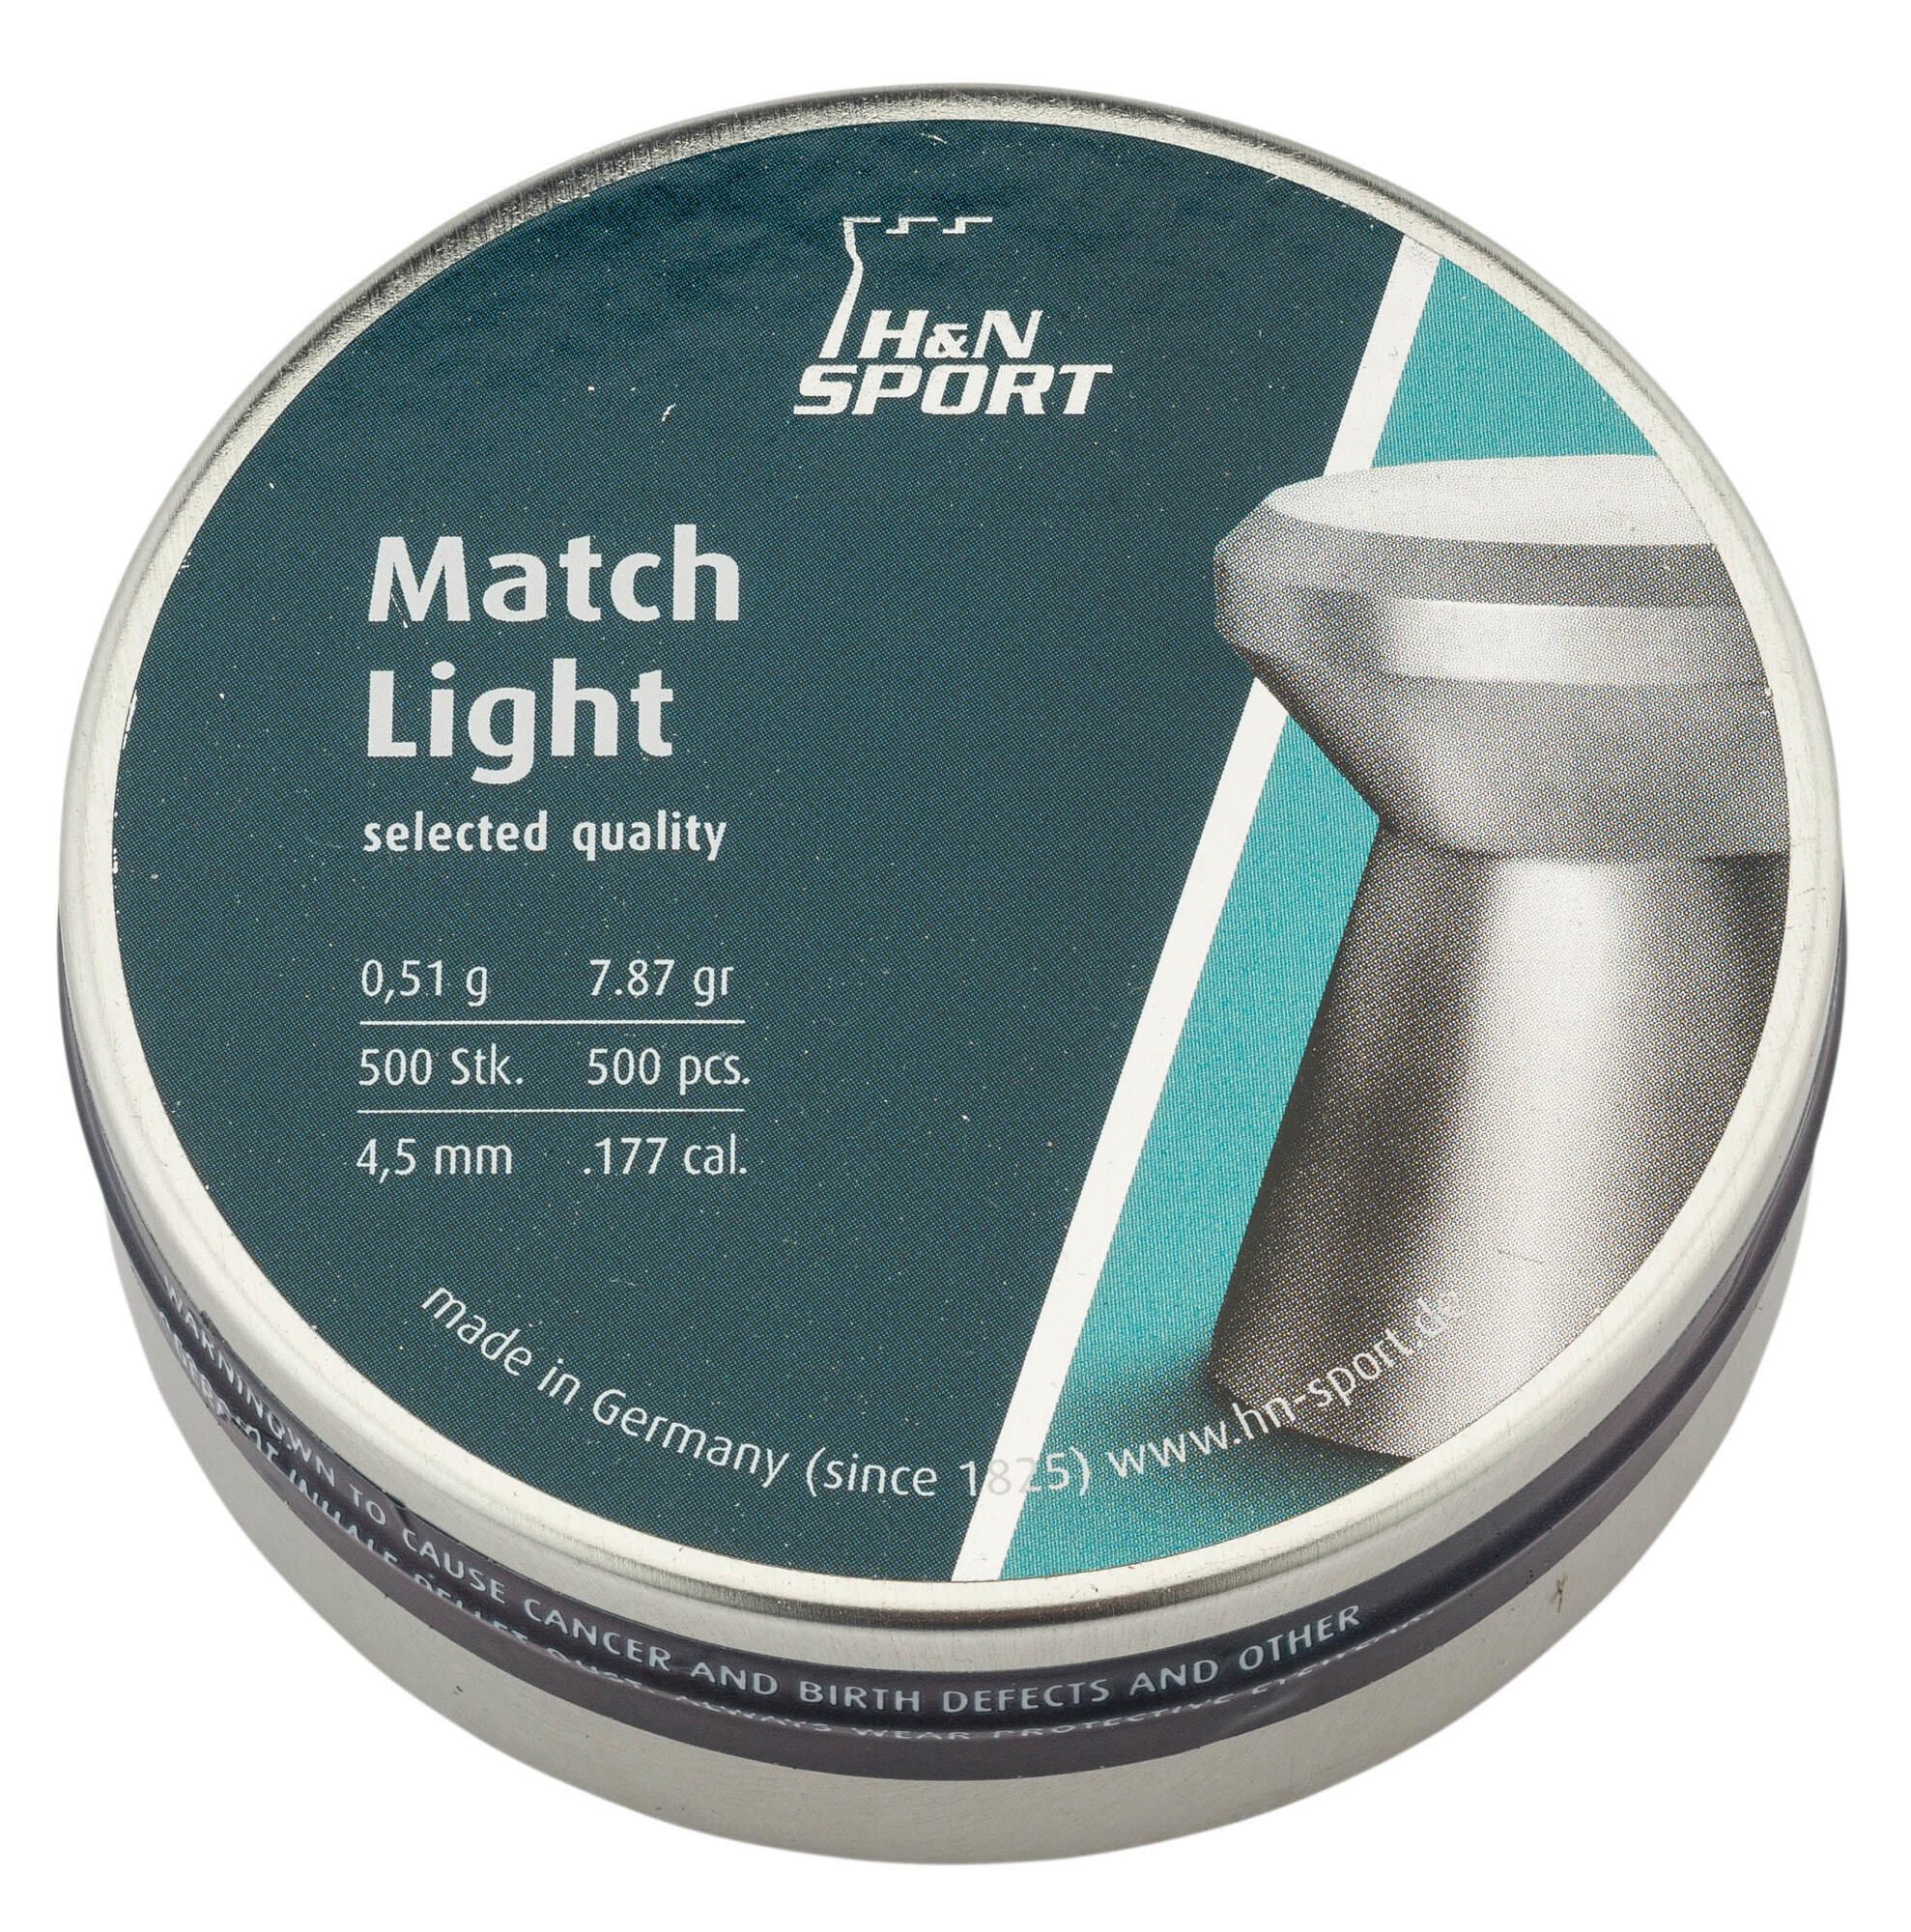 PB318-1-Plombs match light - h&n - PB318